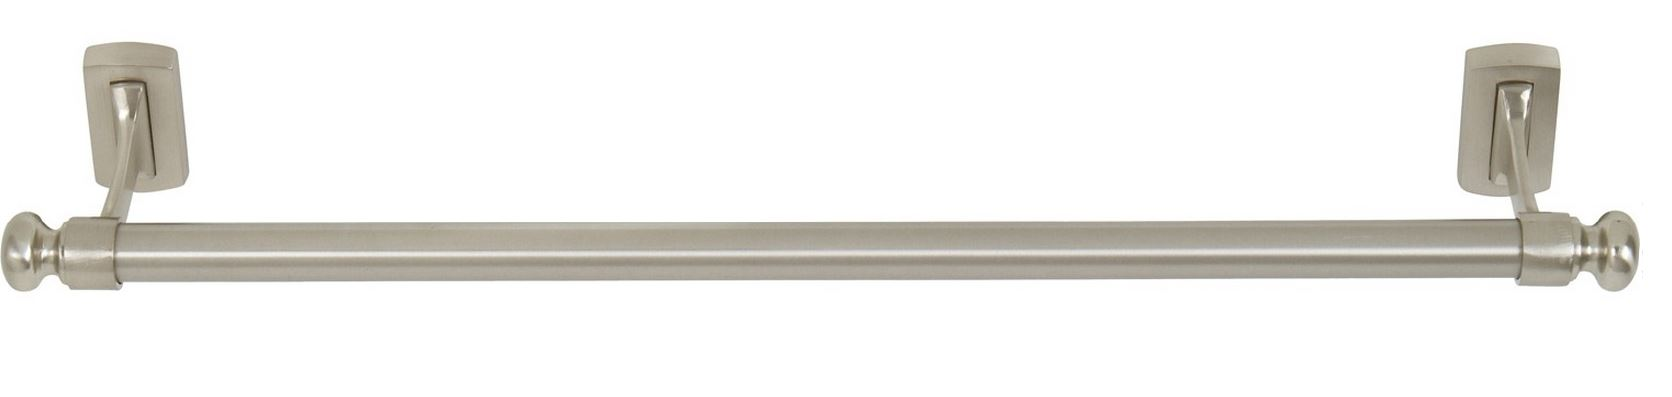 "103LGTB18-BRN Legacy towel bar 18"" shown in brushed nickel. Available in other sizes and finishes."